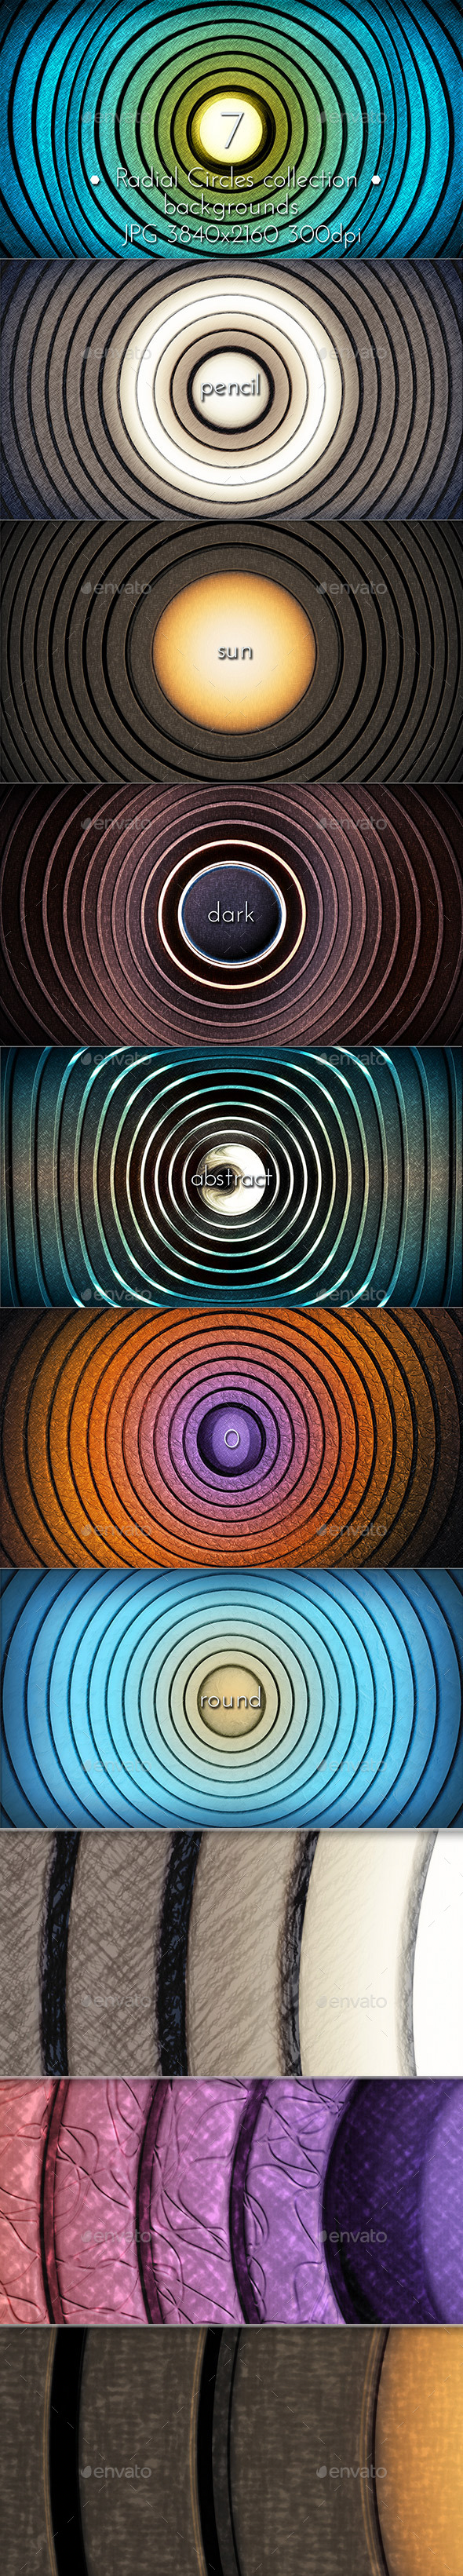 Radial Circles Pencil Background - Miscellaneous Backgrounds